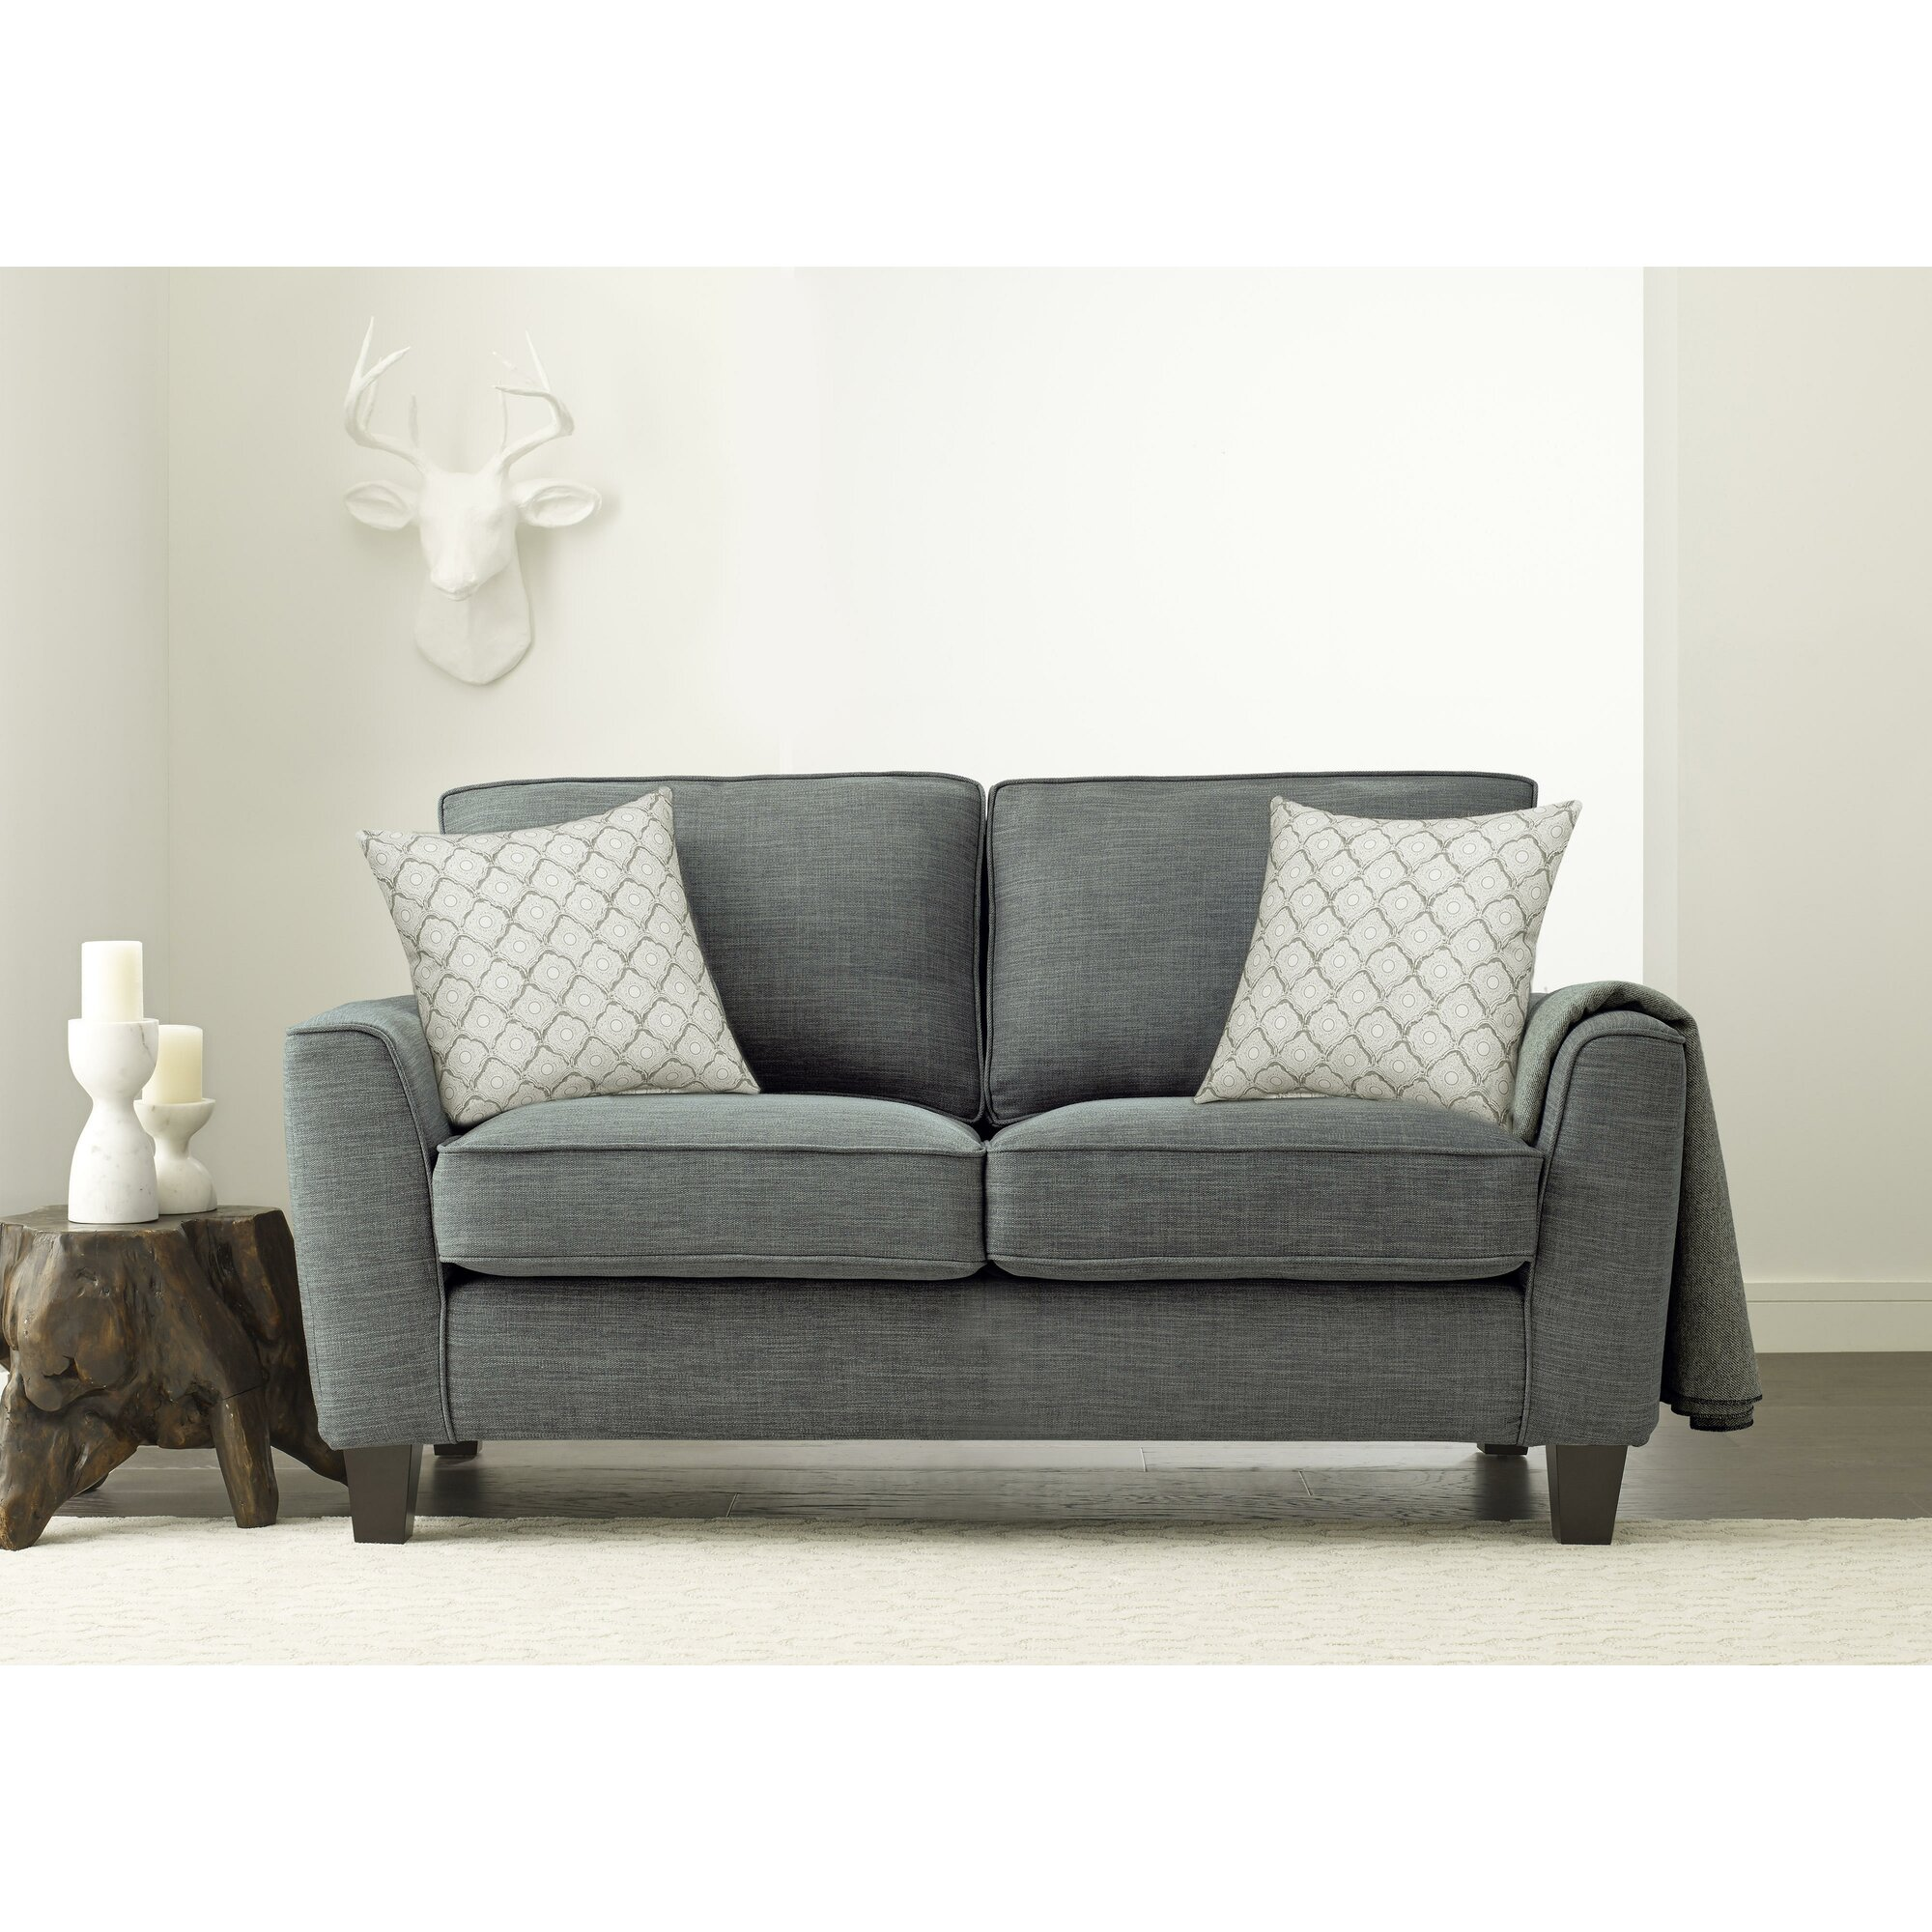 Serta At Home Astoria Living Room Collection